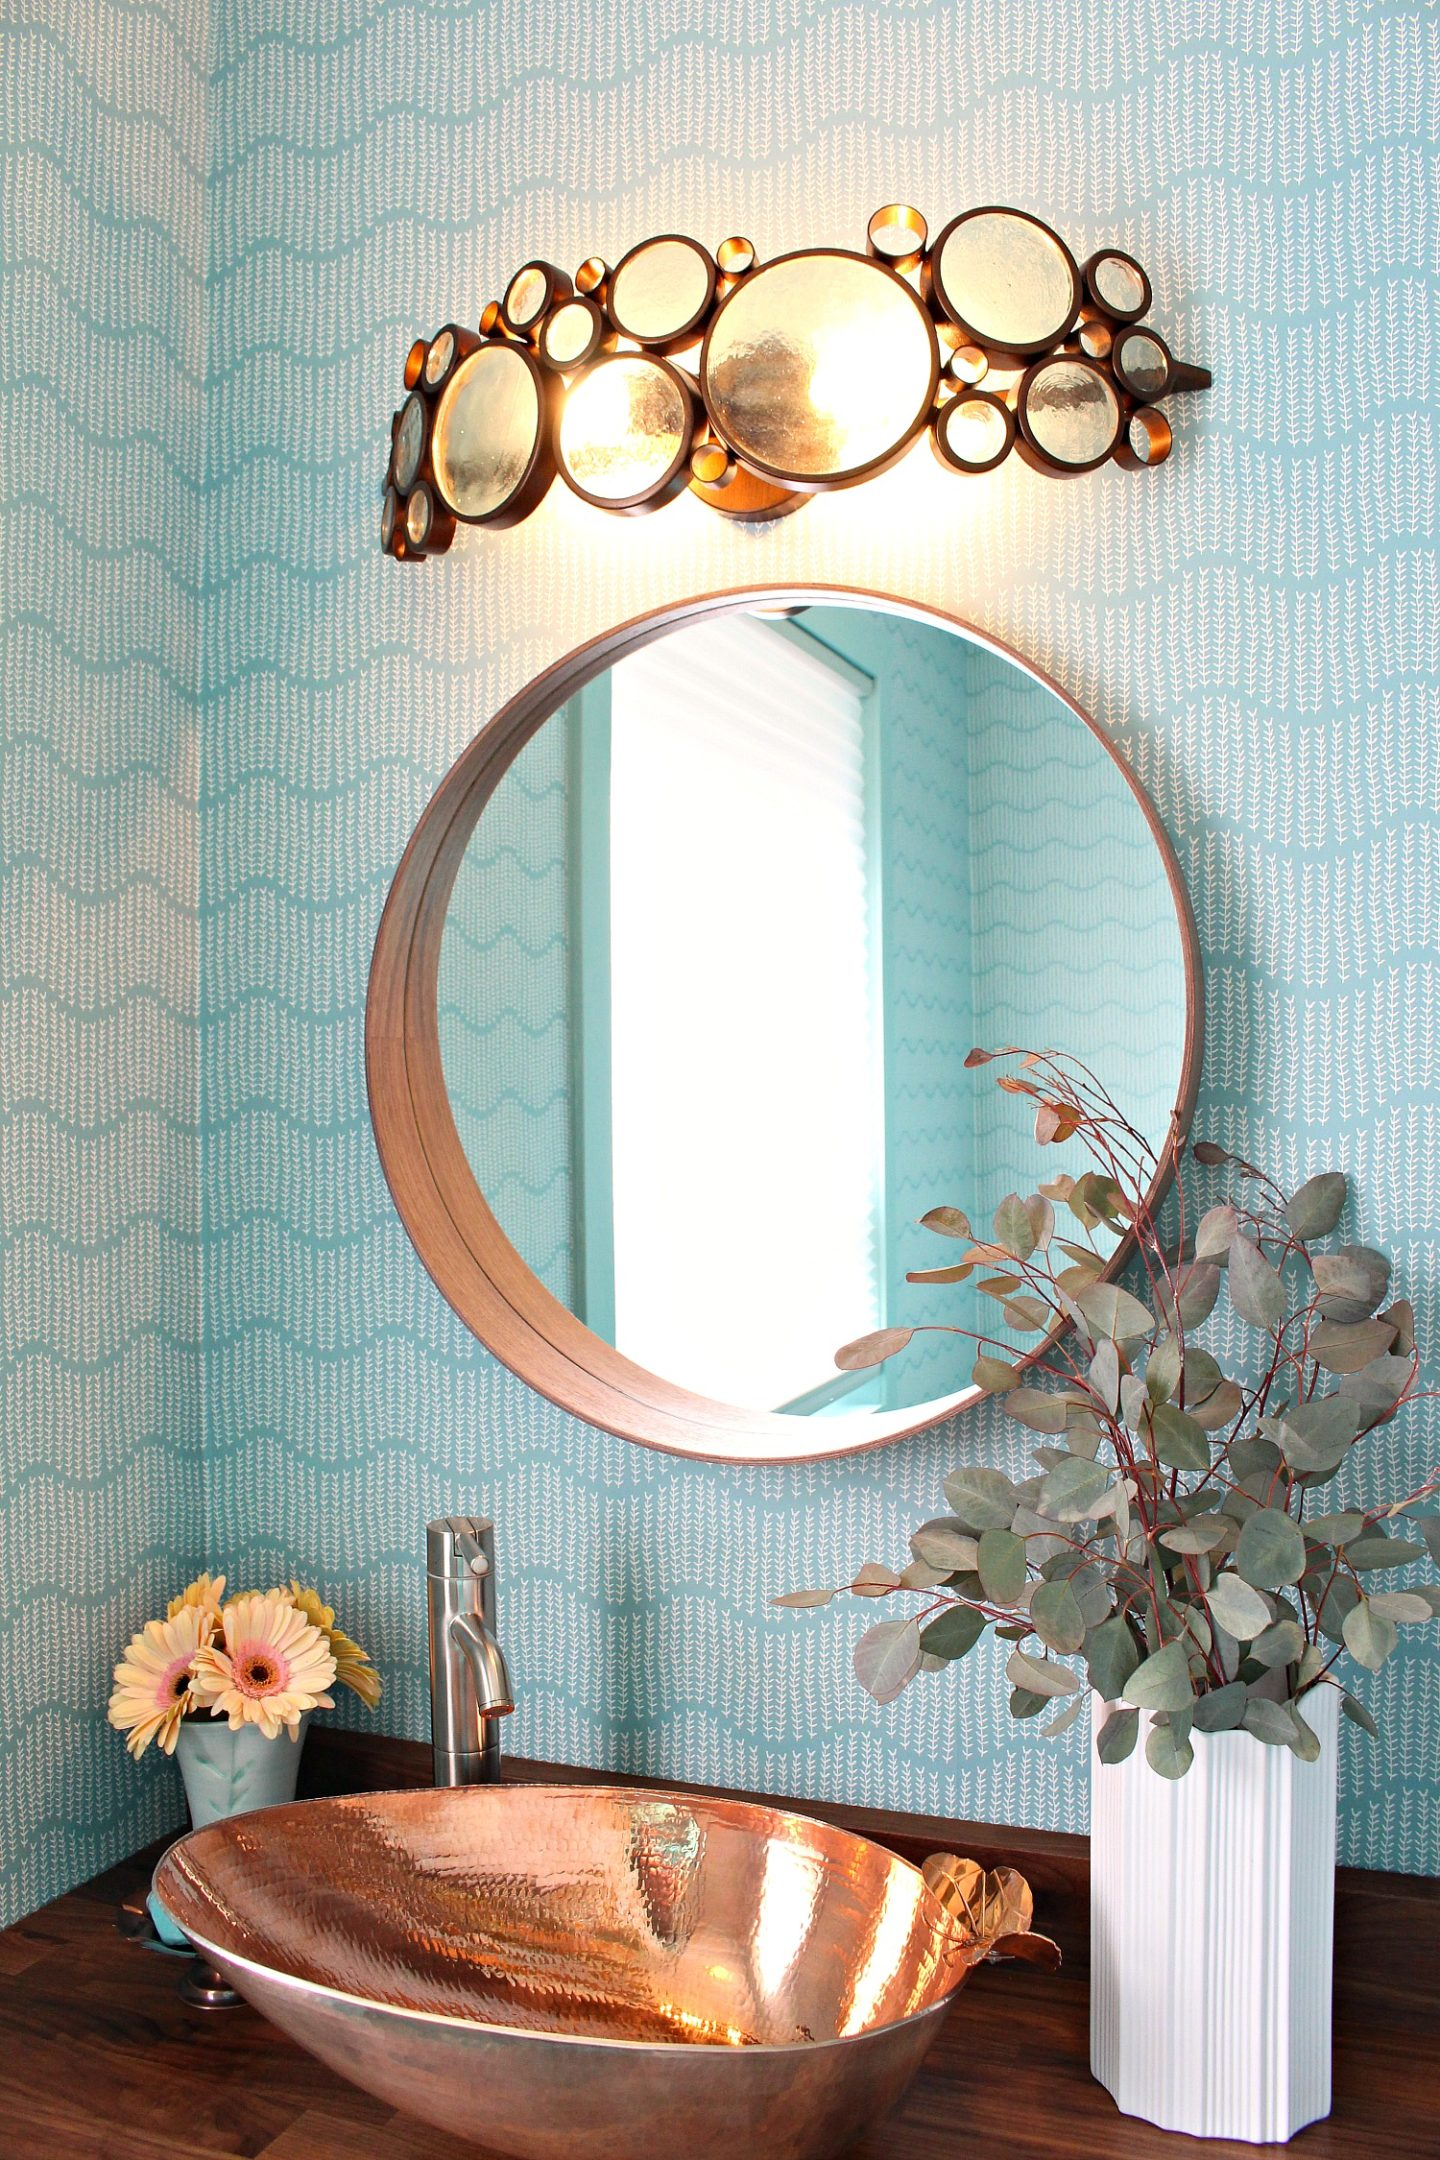 Turquoise and Copper Bathroom Decor